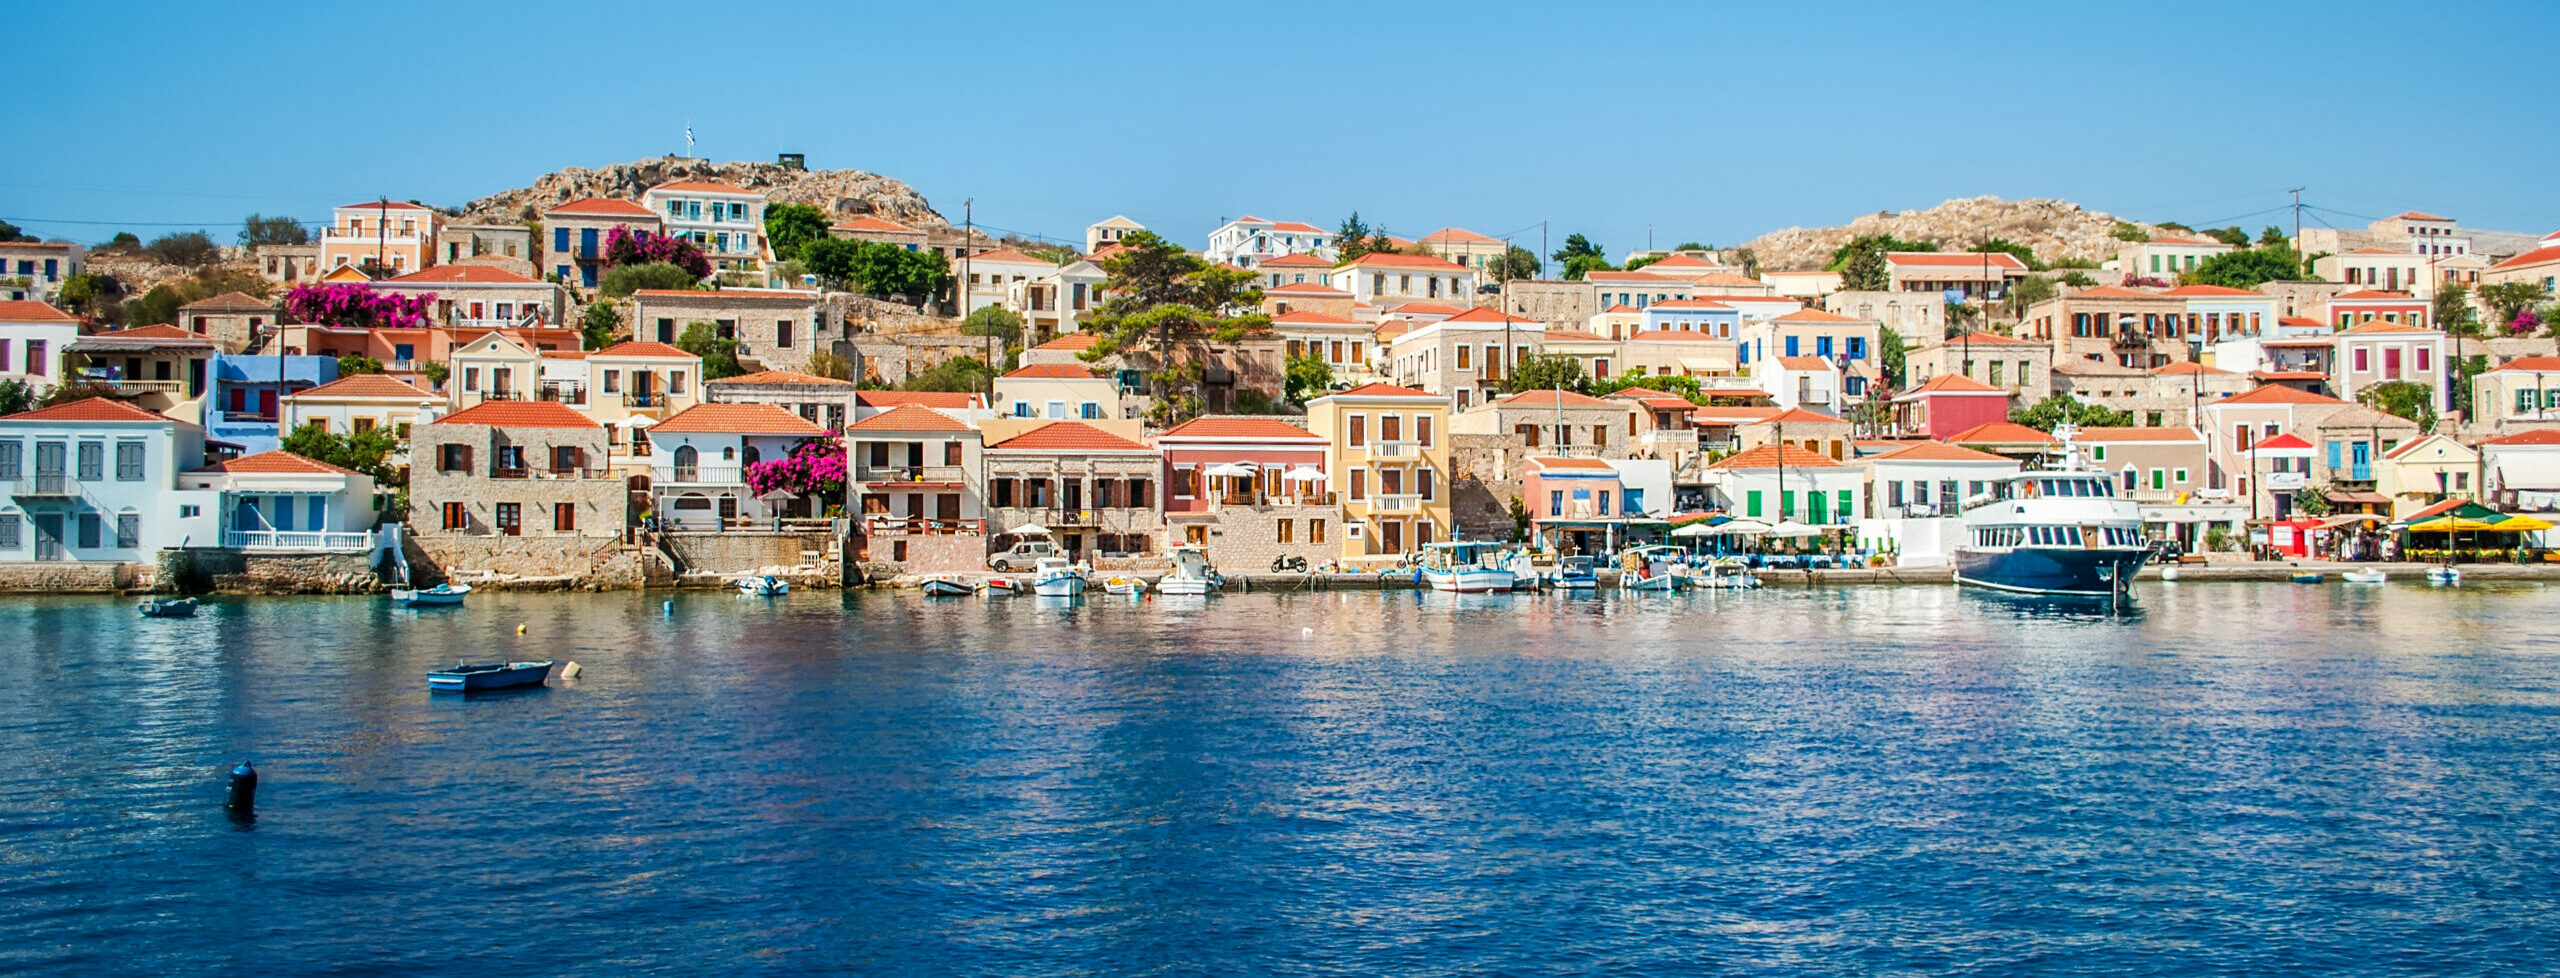 Chalki: The charming little paradise of the Dodecanese Islands